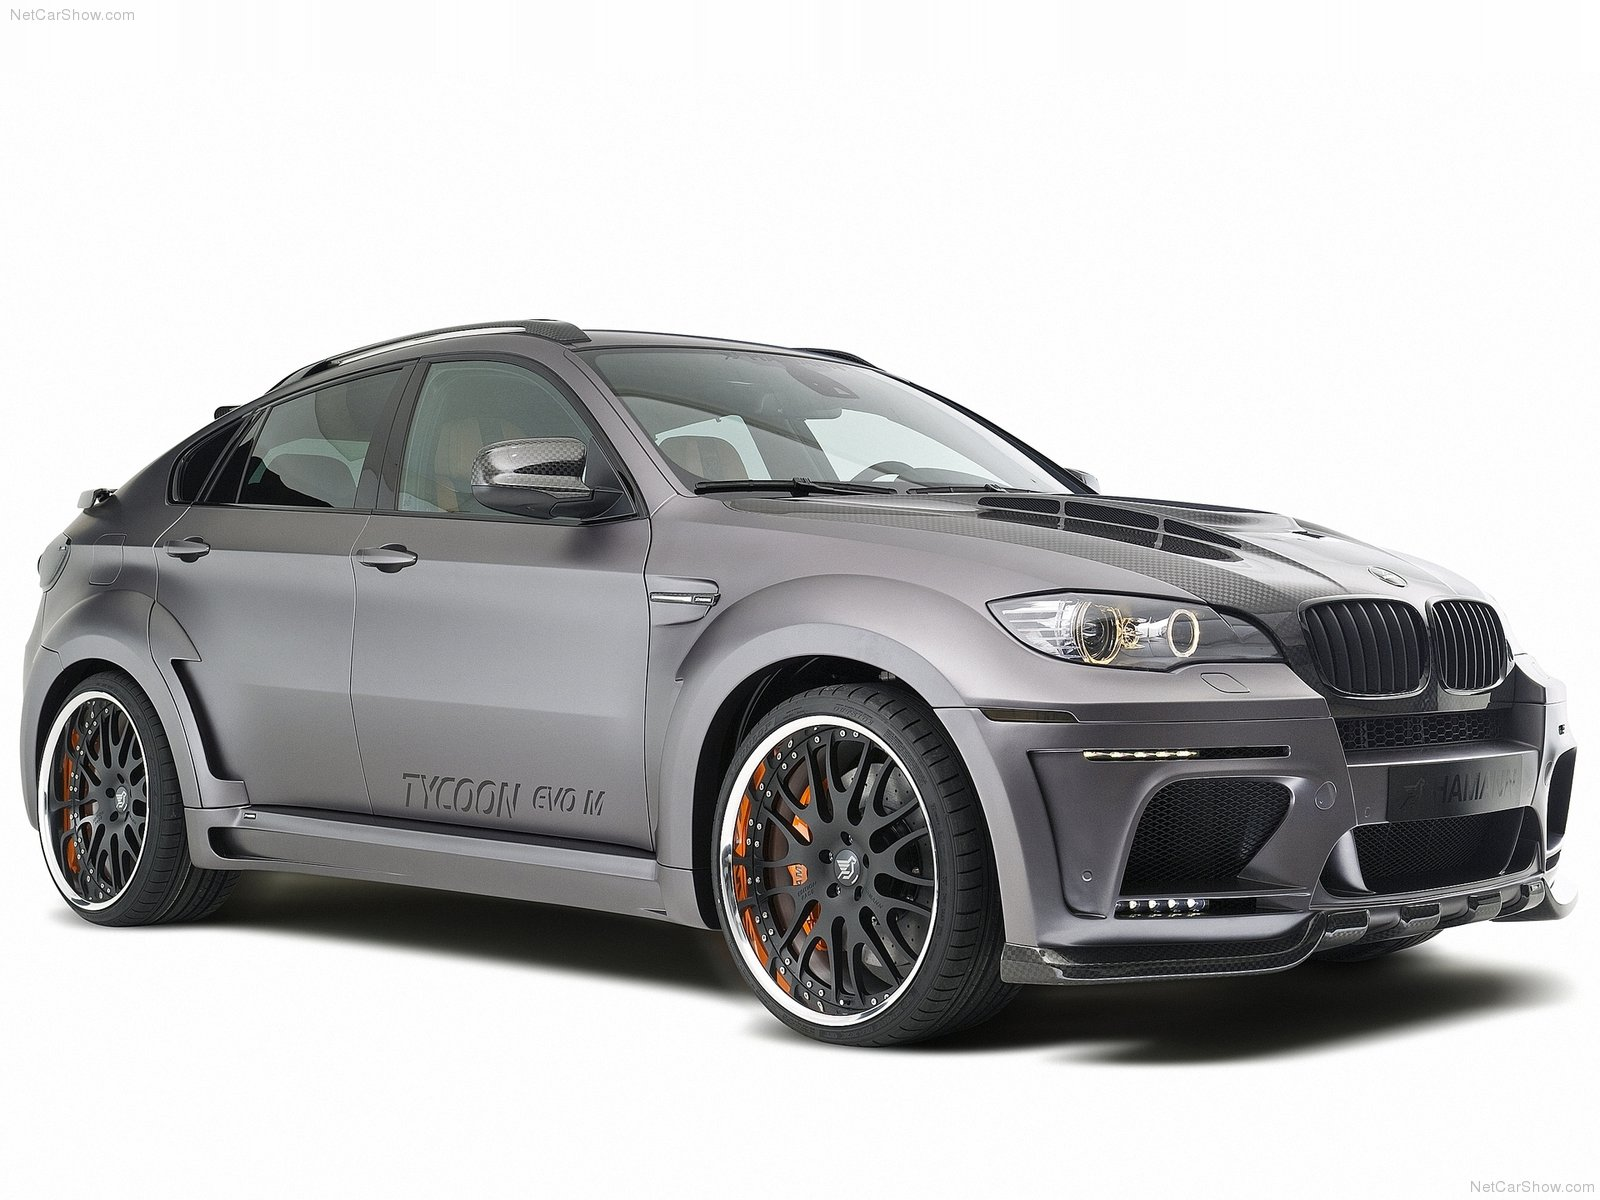 Hamann BMW X6 Tycoon Evo M photo 79313